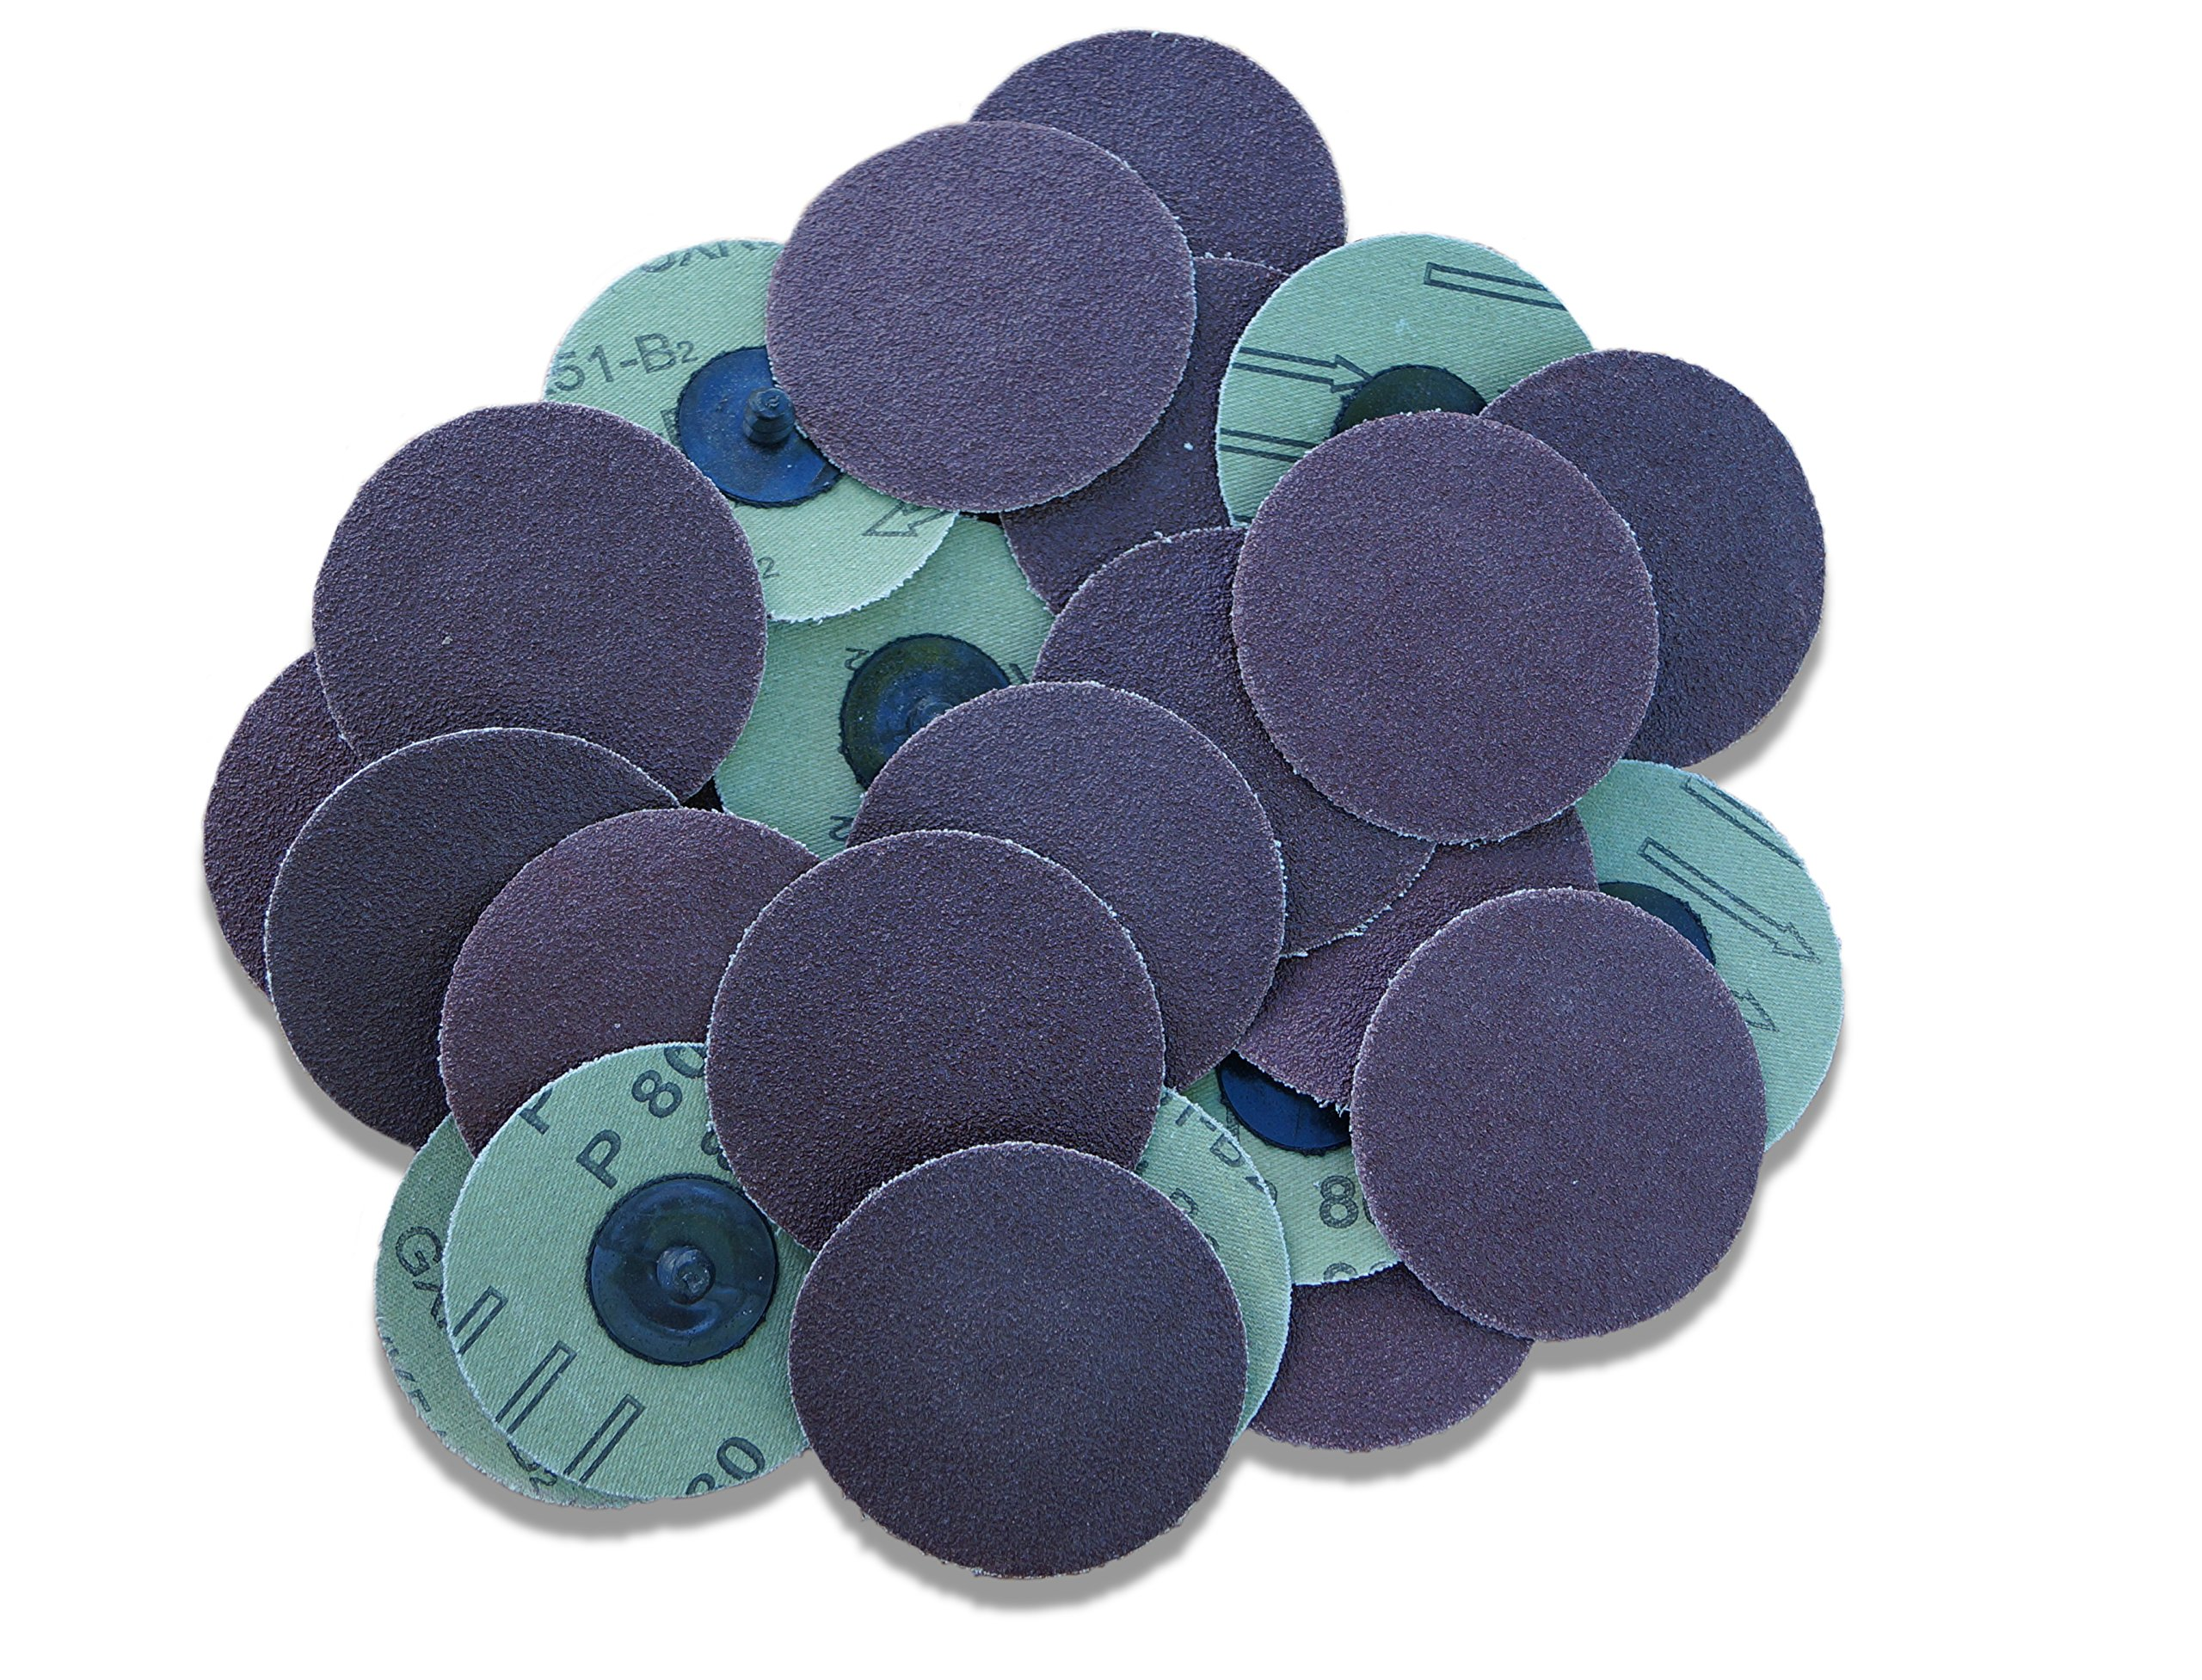 25pc 3'' Roloc Discs 80 Grit R Type Sanding Abrasive Roll Lock Medium Coarse Grain by IIT (Image #5)